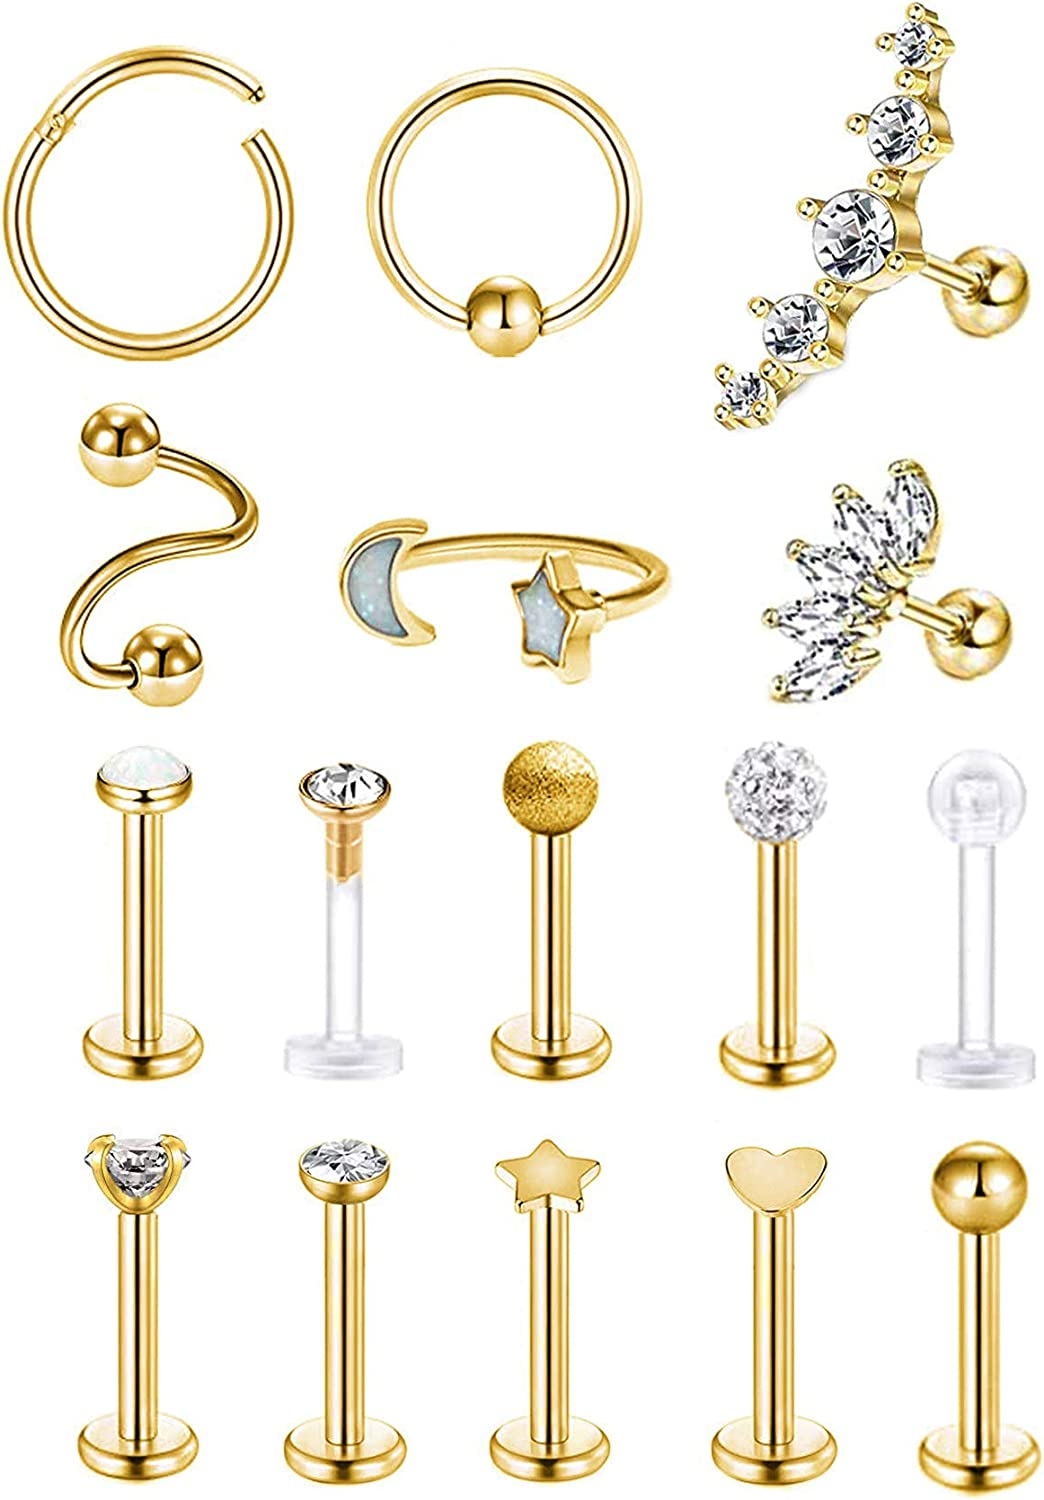 REVOLIA 16 Pcs 16G Stainless Steel Tragus Earring Cartilage Helix Single Earring Lip Rings Labret Studs Daith Rook Piercing